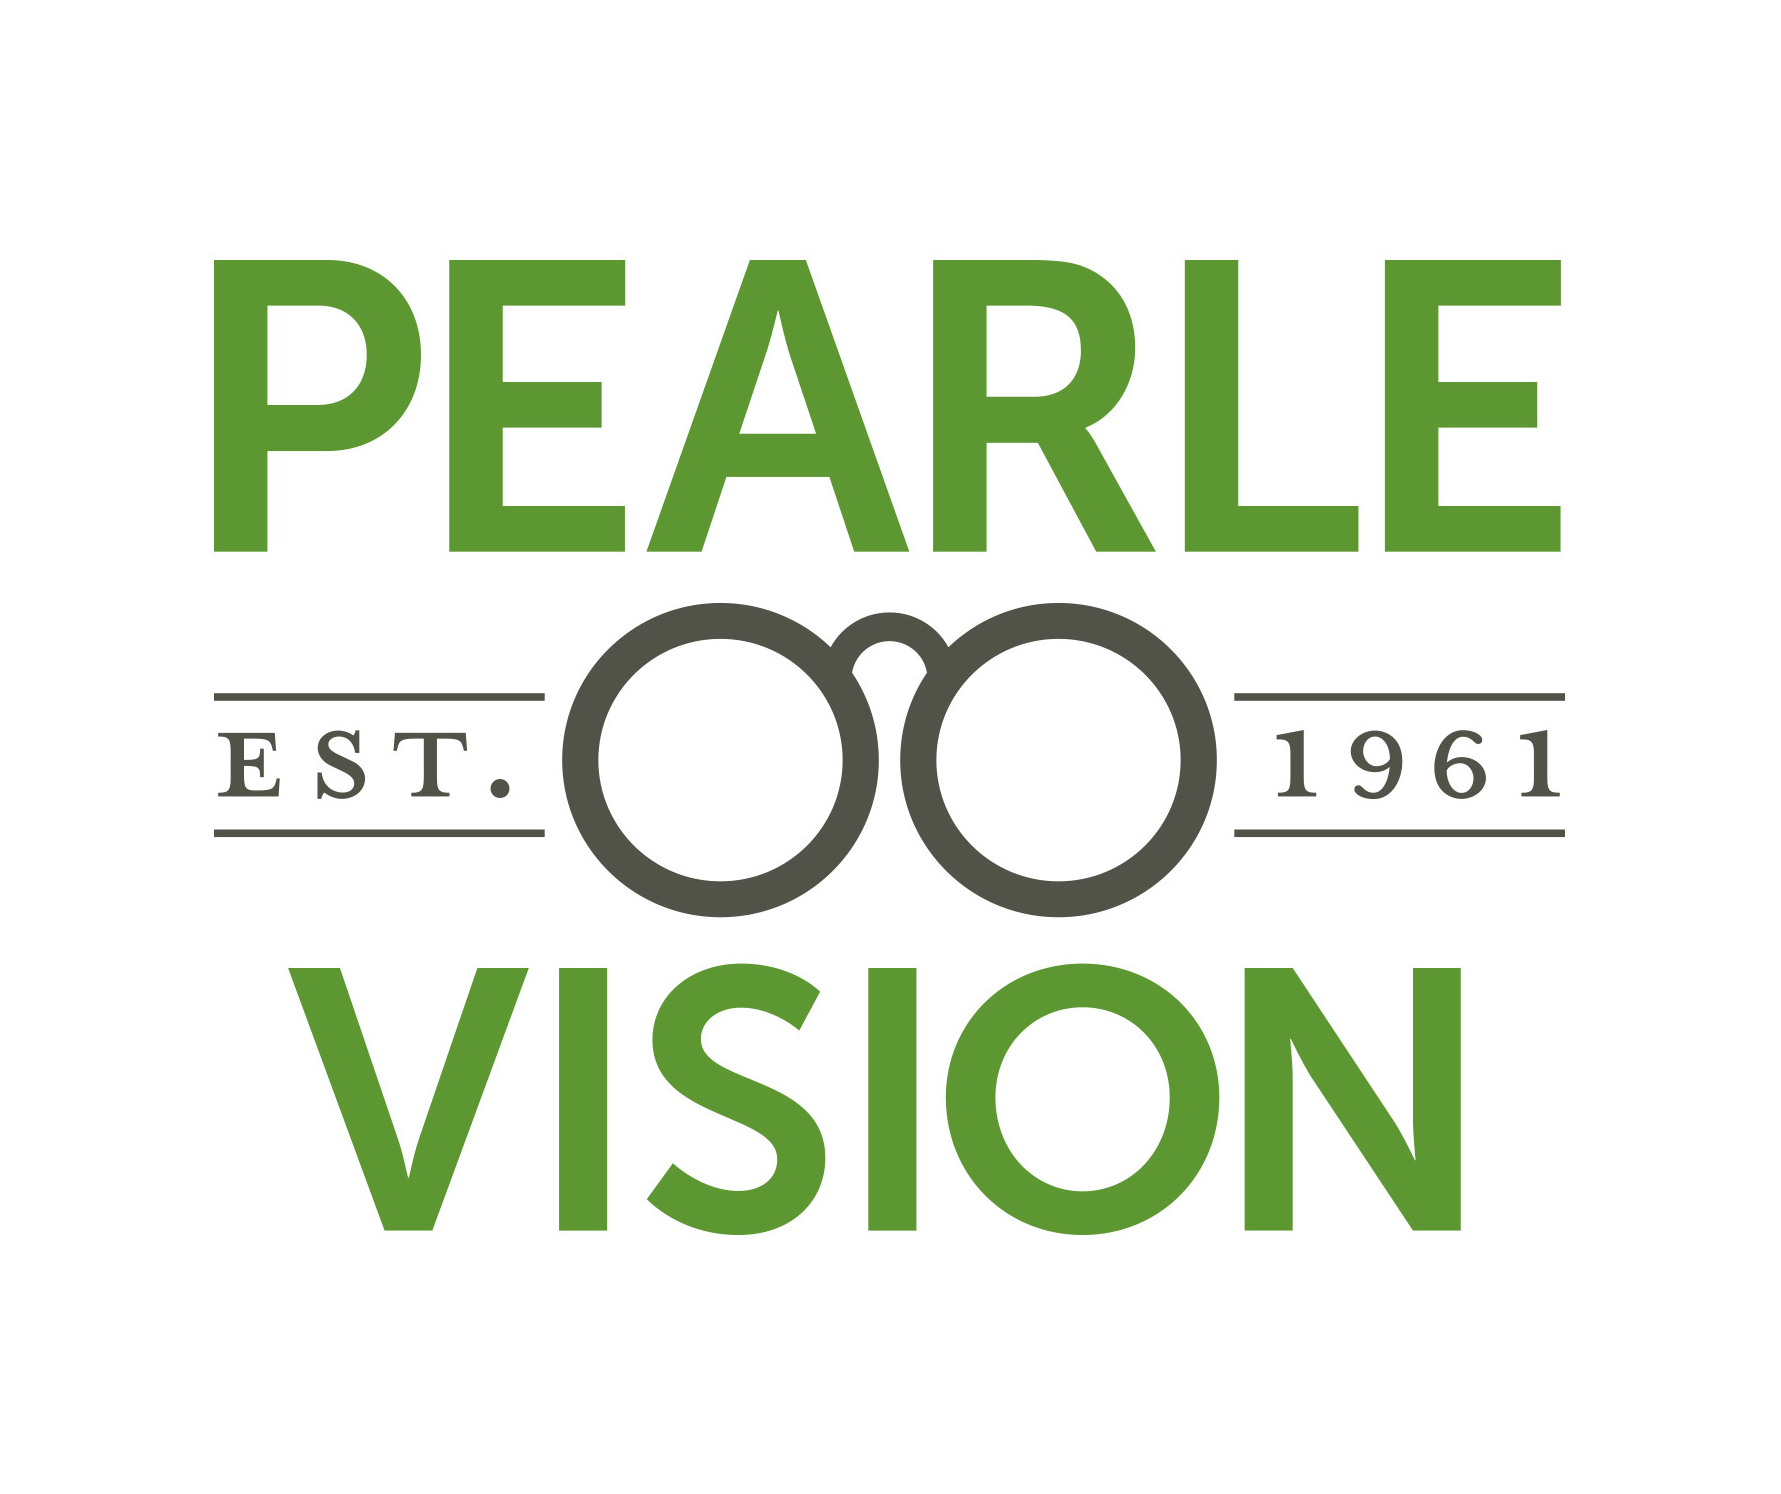 About Us: Pearle Vision